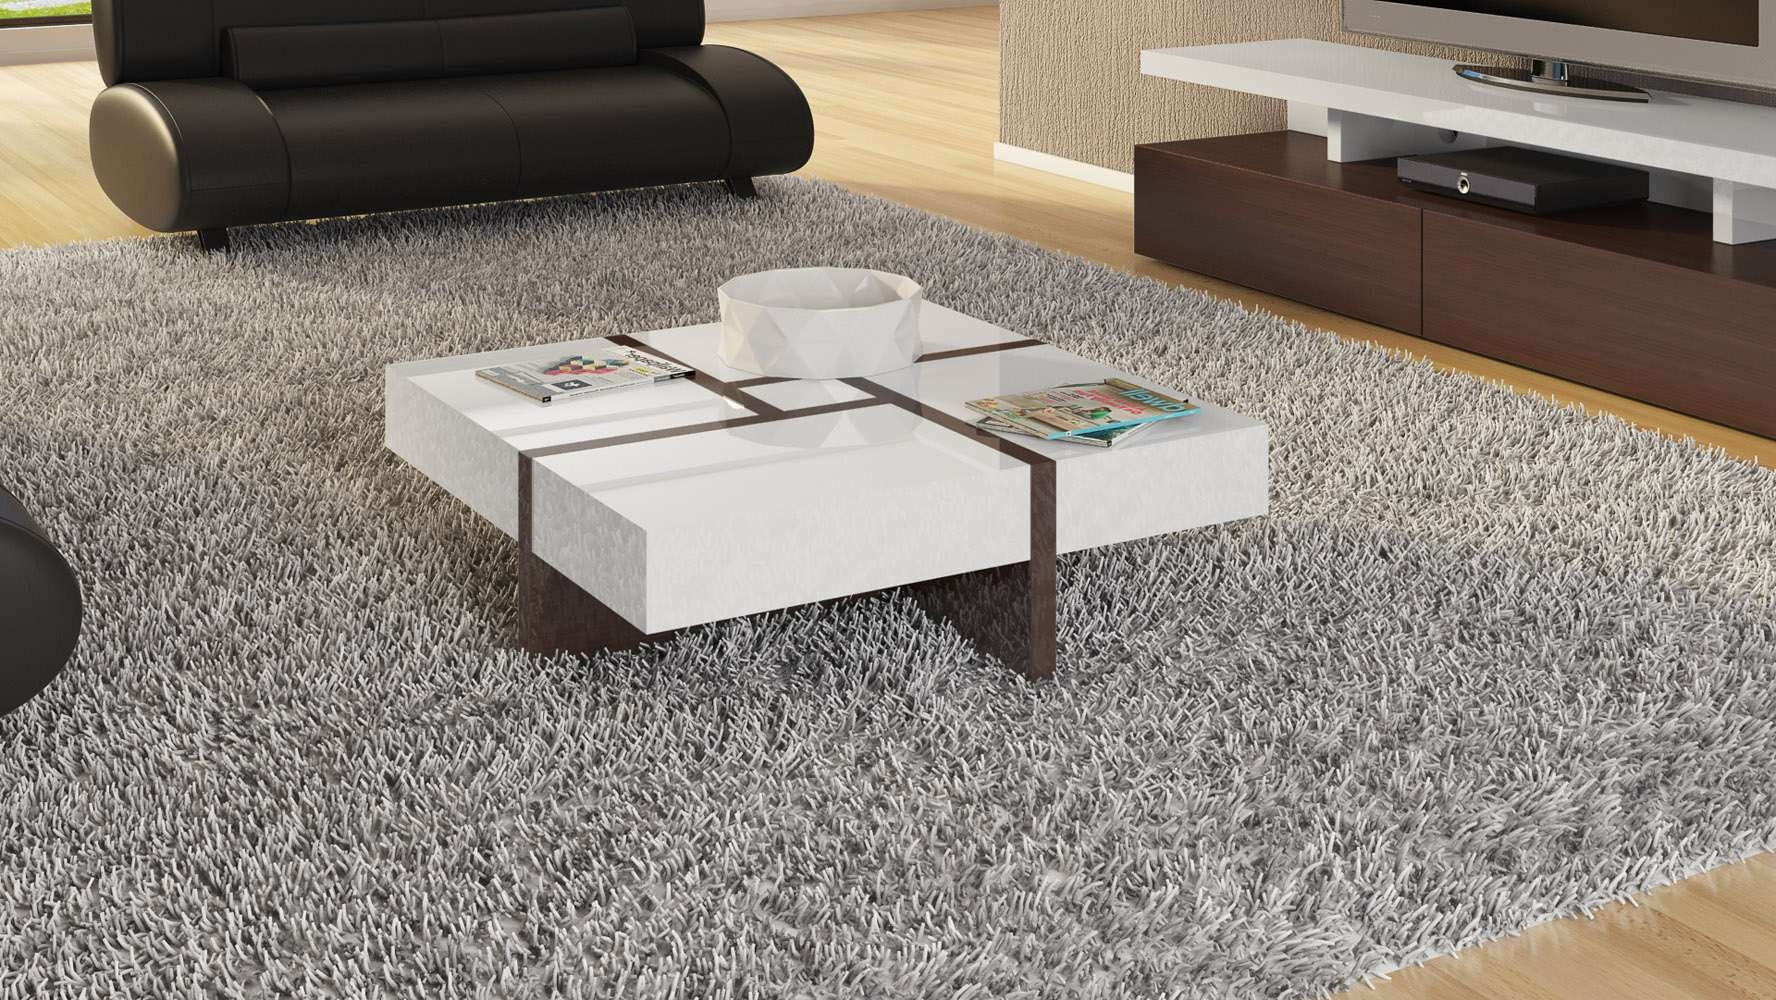 Recent White Coffee Tables With Storage Inside Coffee Table : Mcintosh High Gloss Coffee Table With Storage White (View 16 of 20)